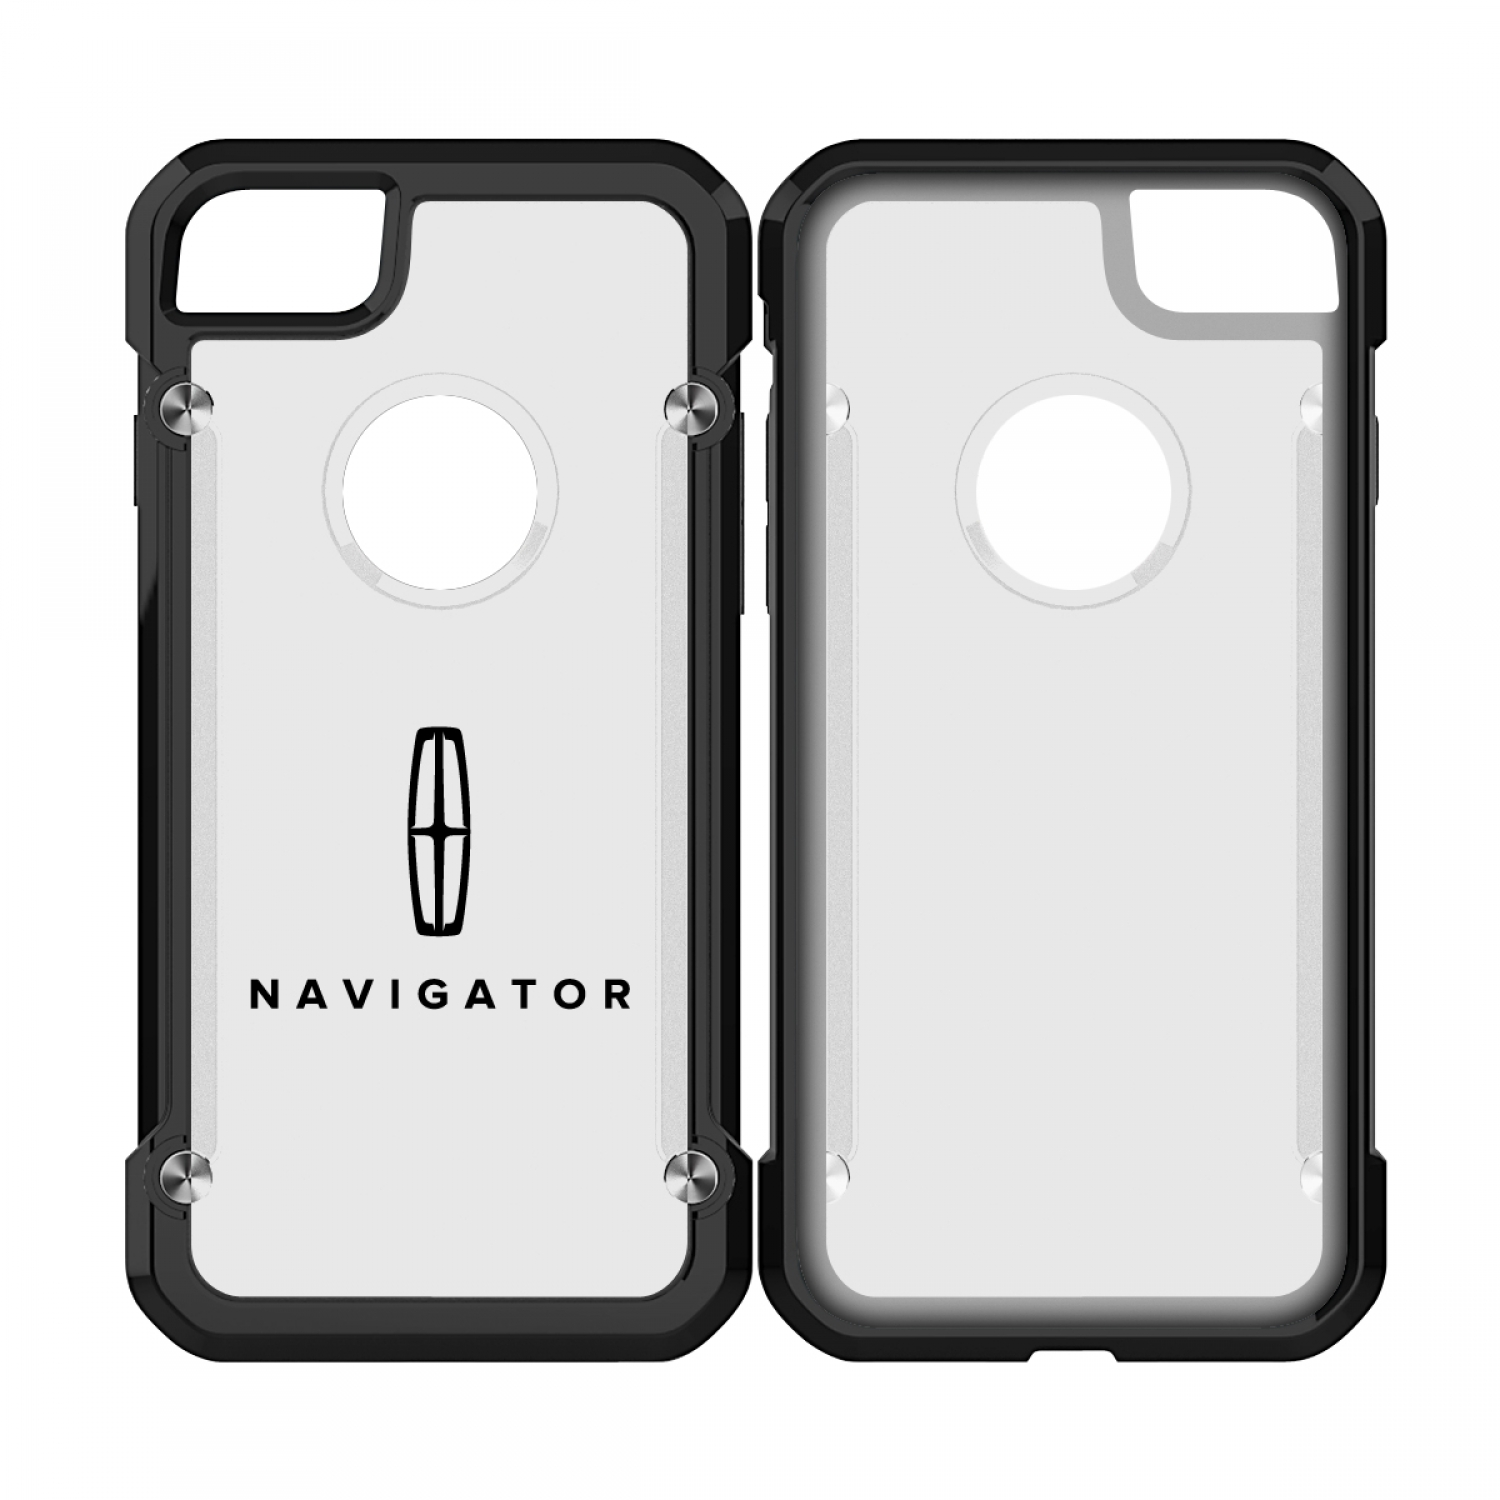 Lincoln Navigator iPhone 7 iPhone 8 TPU Shockproof Clear Cell Phone Case